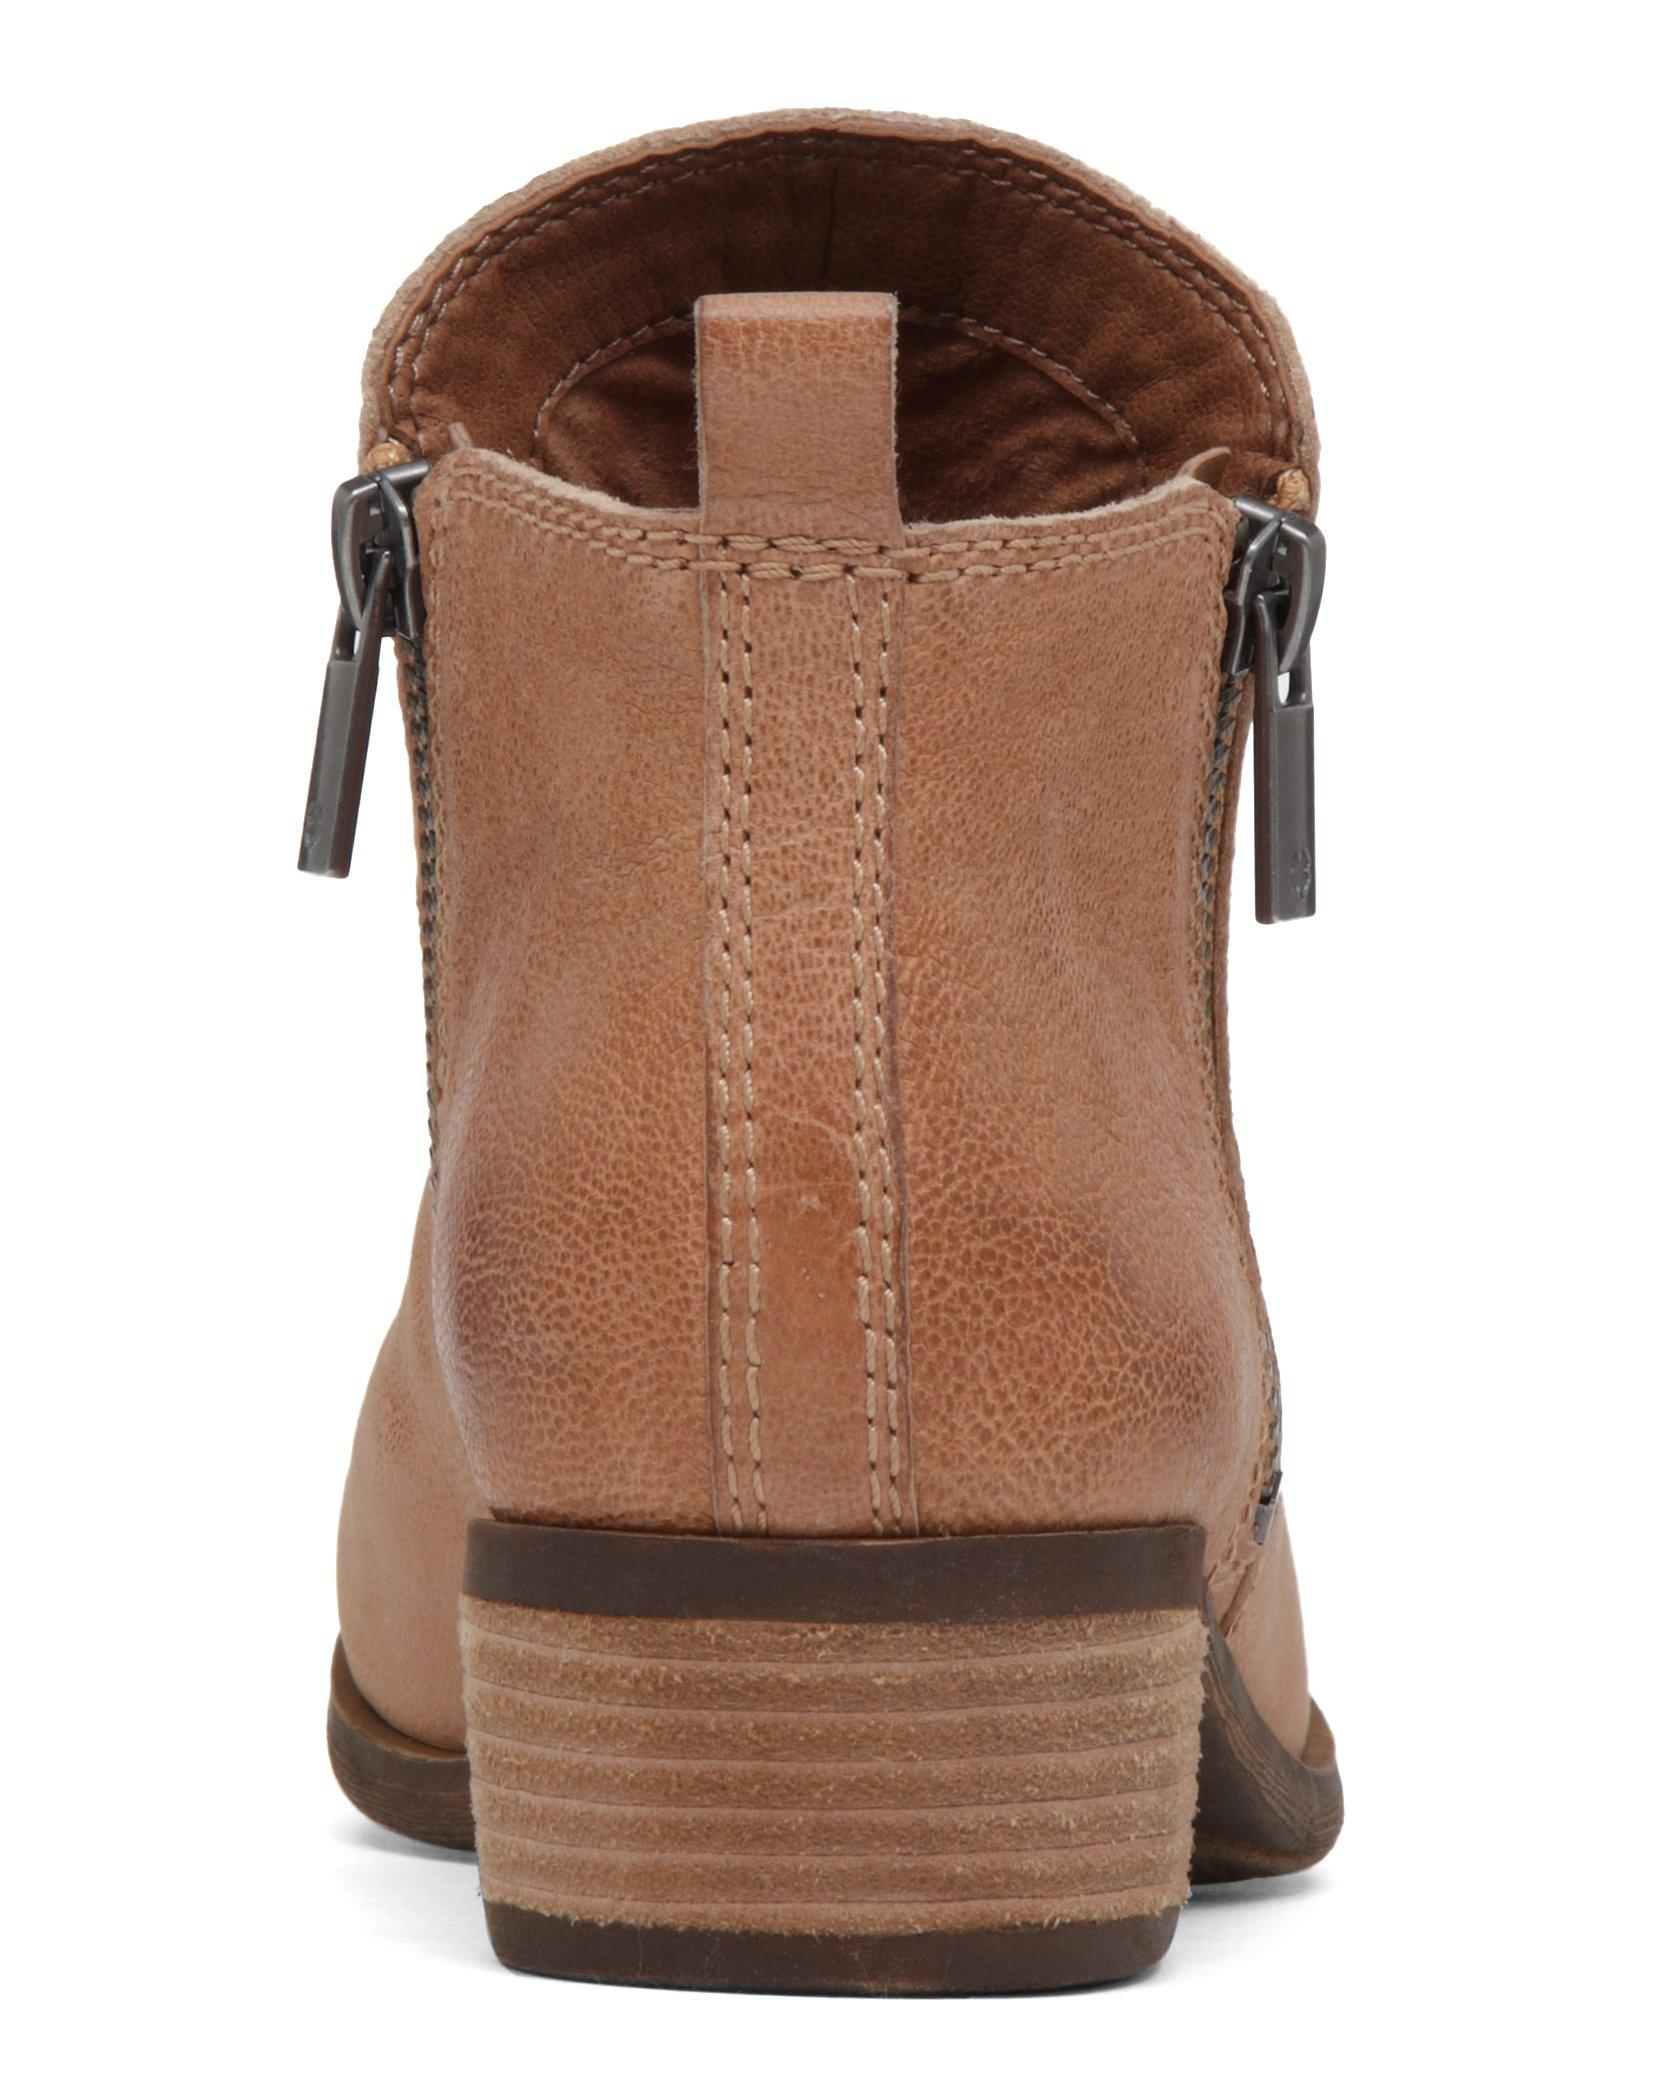 BASEL LEATHER FLAT BOOTIE, image 5